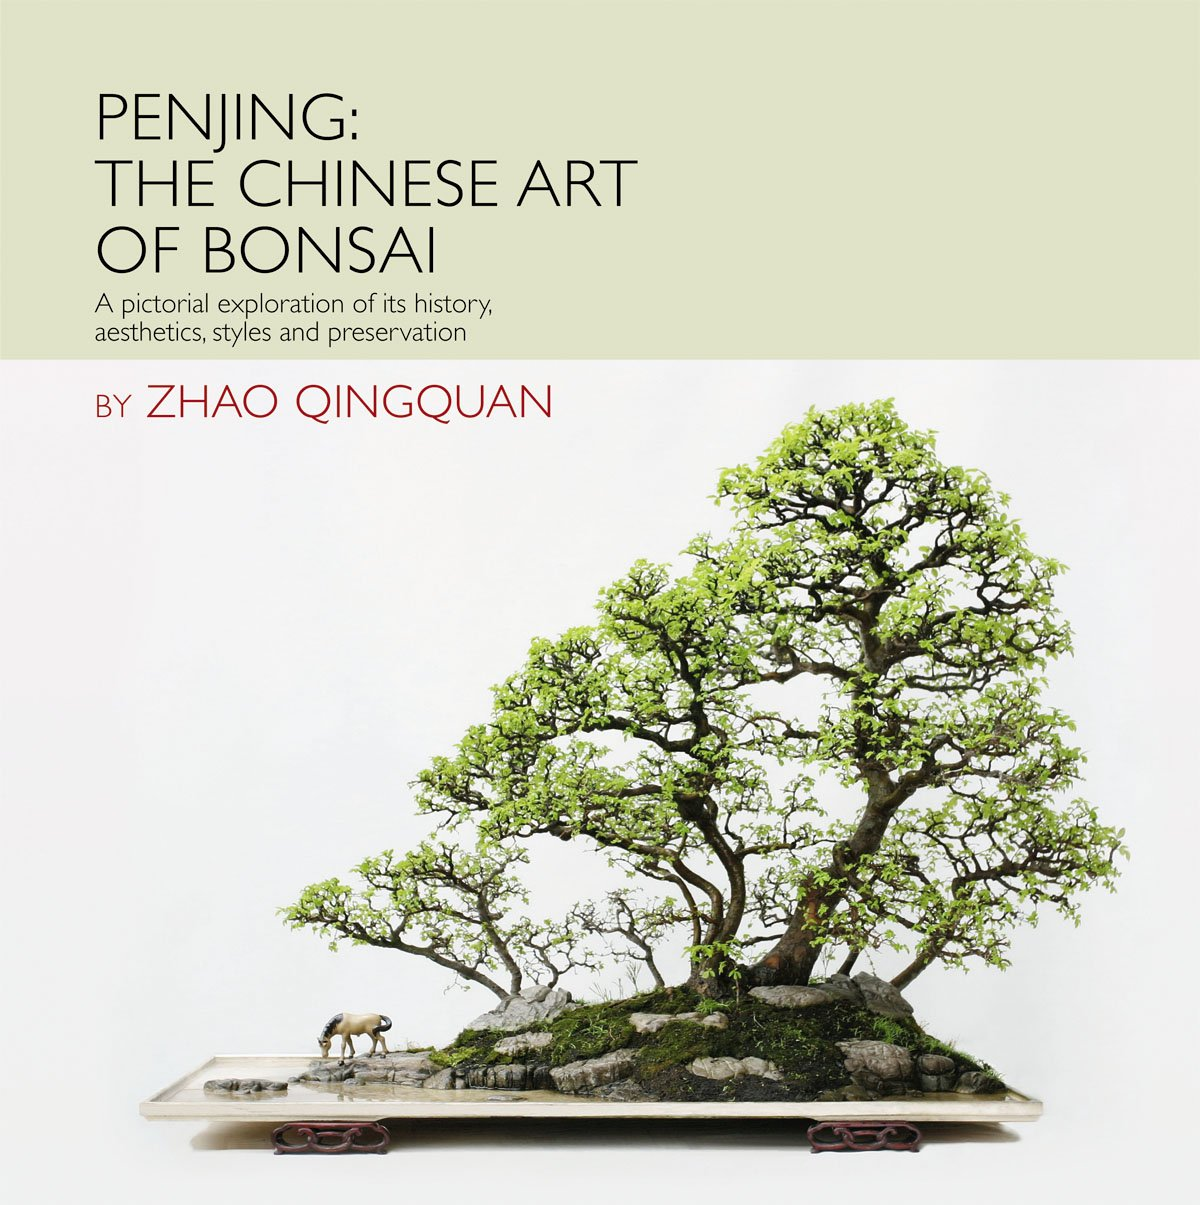 Penjing Pictorial Exploration Aesthetics Preservation product image